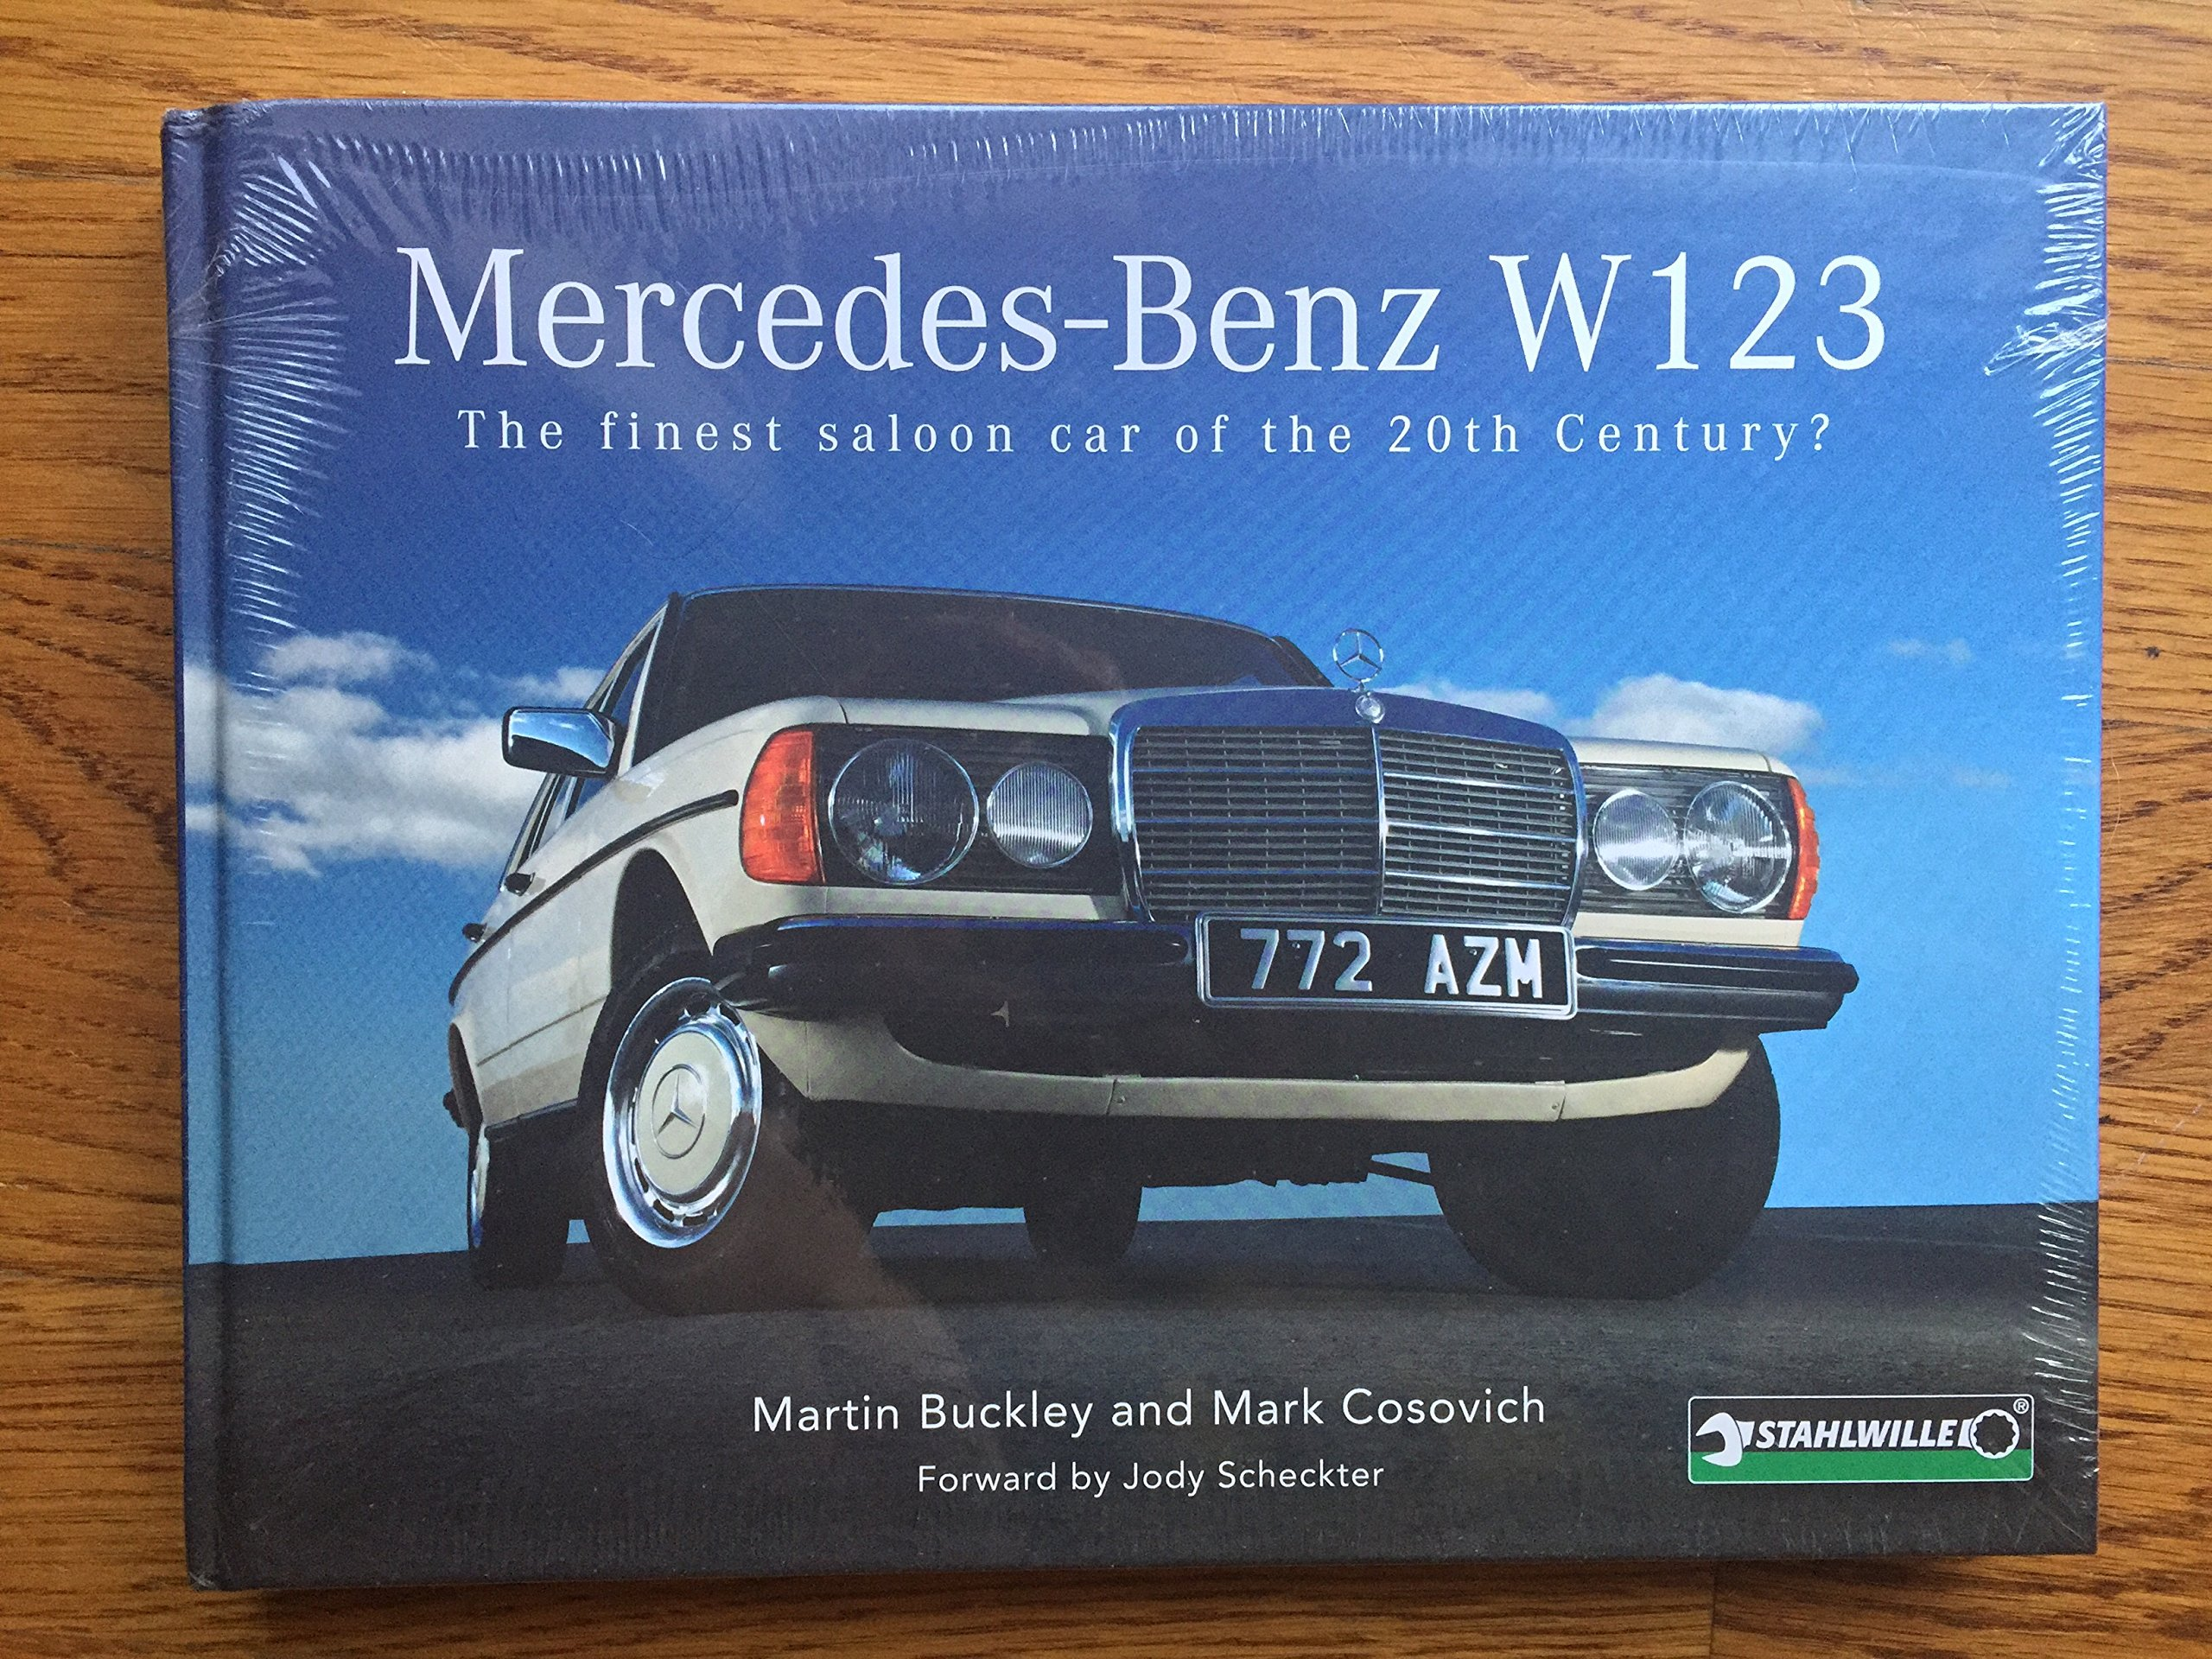 Mercedes-Benz W123 the Finest Saloon Car of the 20th Century